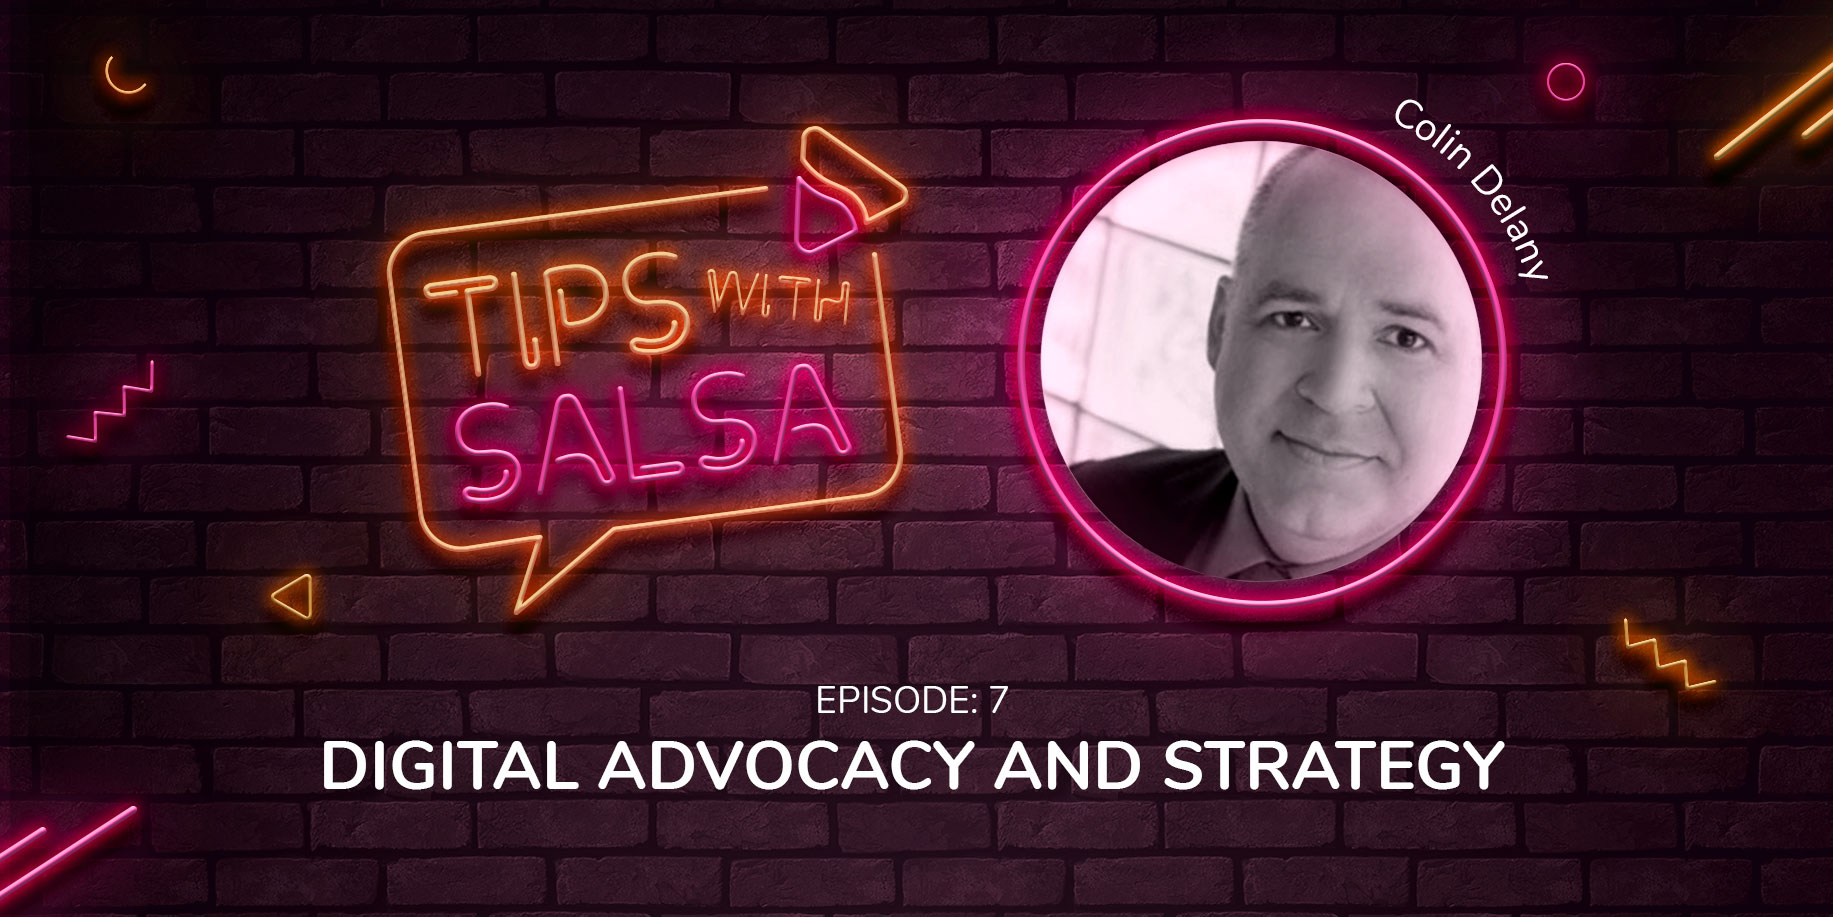 Digital Advocacy and Strategy